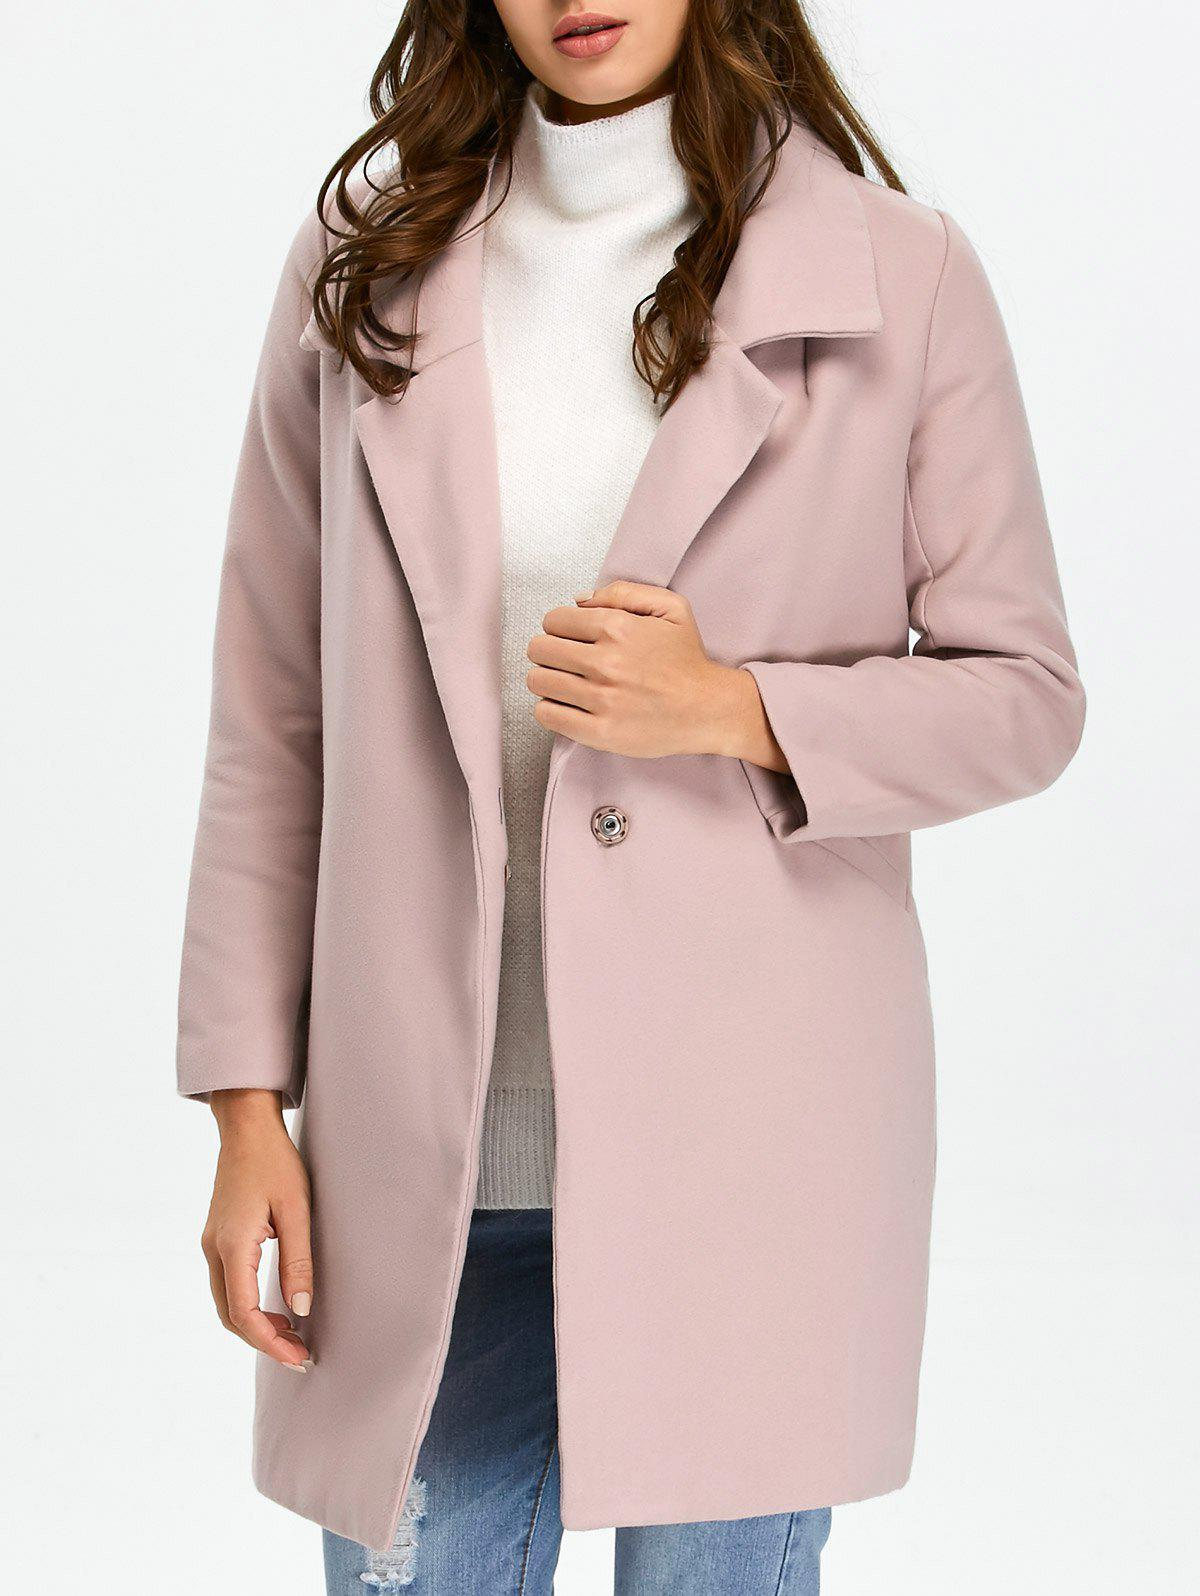 Pocket Lapel Overcoat With Snap Button - PALE PINKISH GREY M